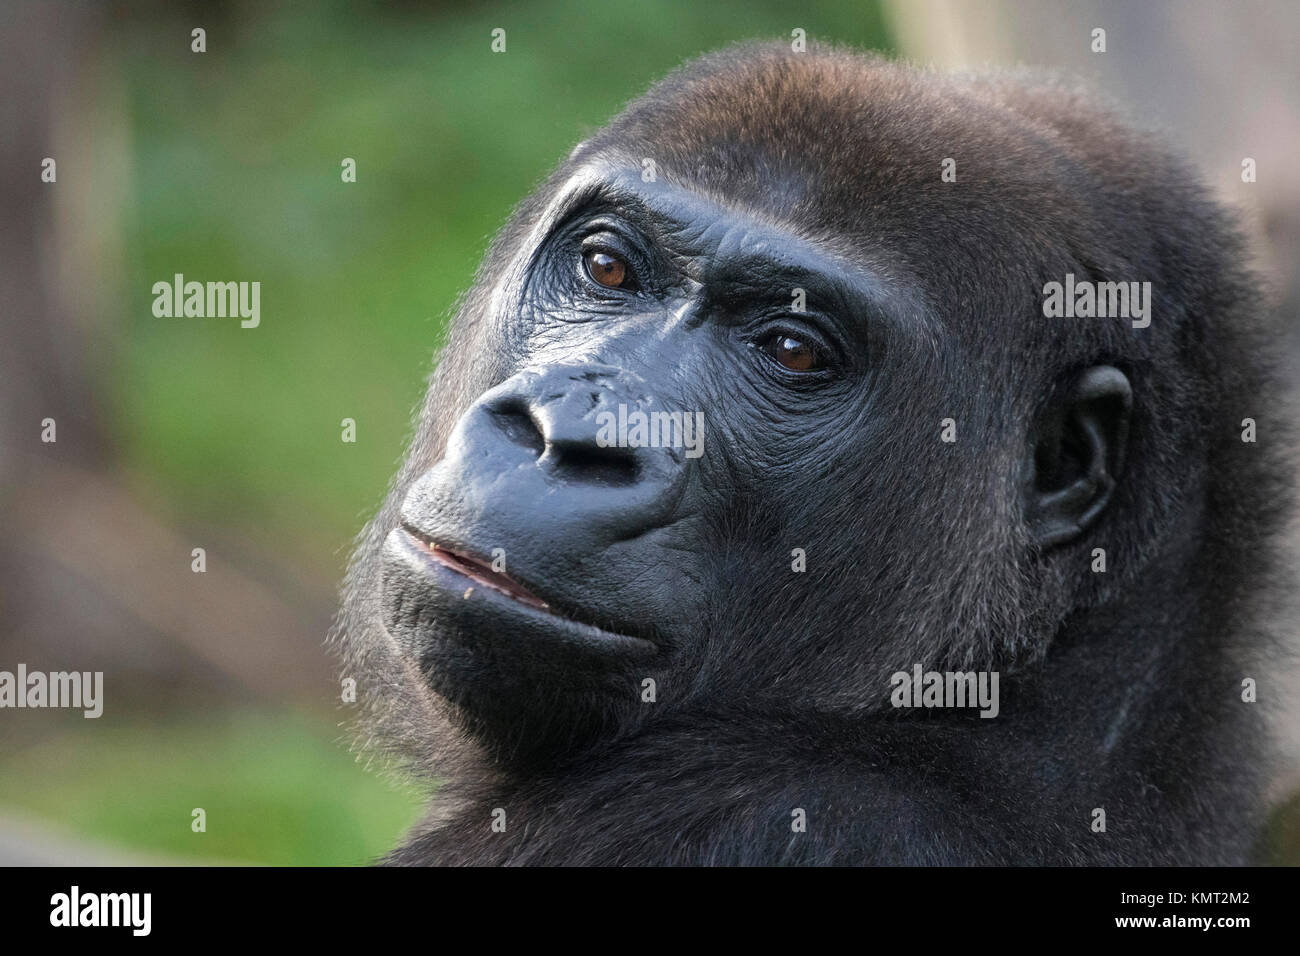 The Mountain Gorilla in the zoo - Stock Image